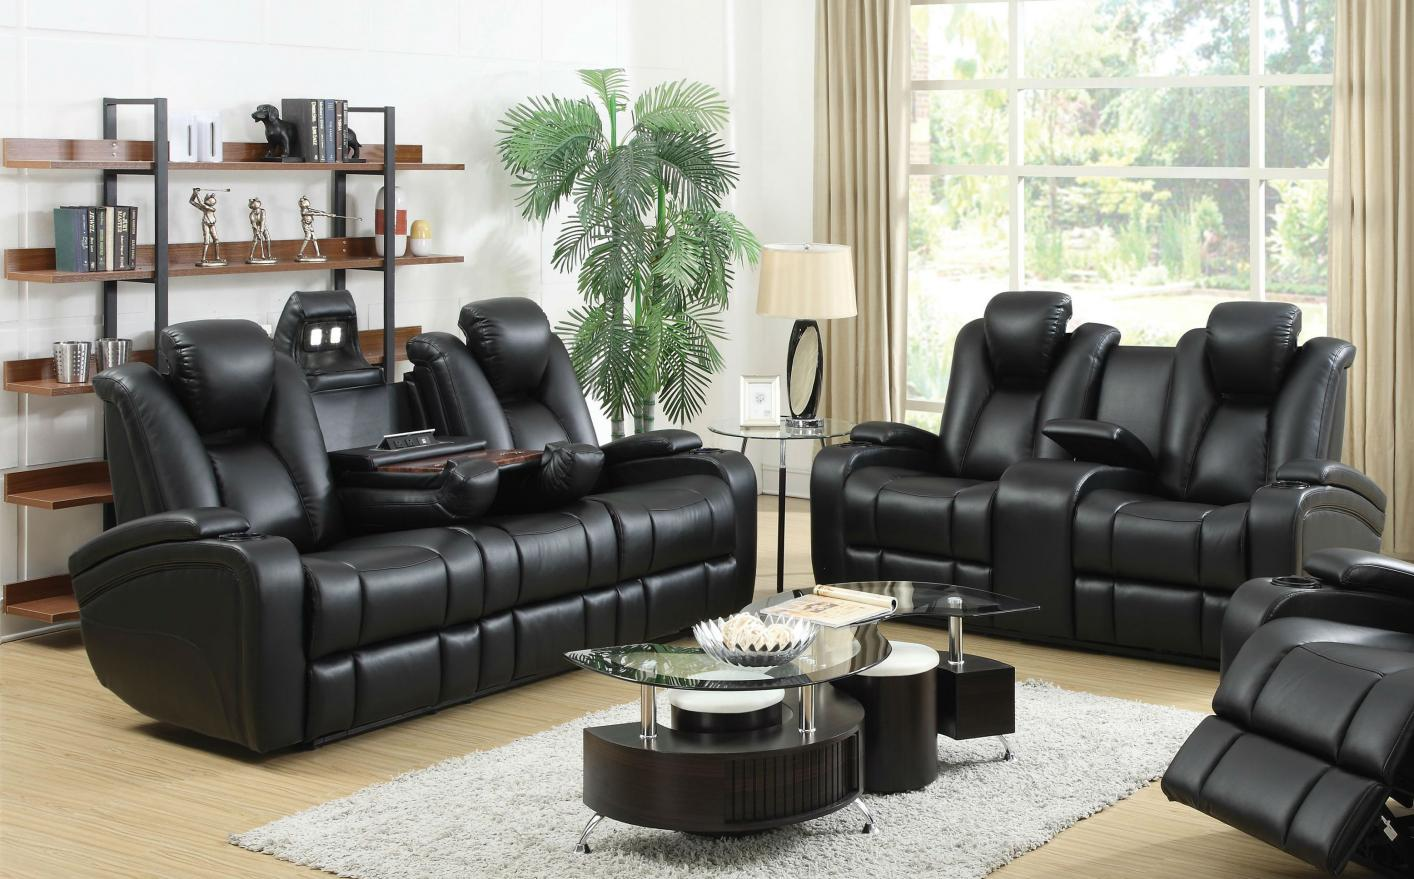 Coaster 601741p 601742p Black Leather Power Reclining Sofa And Loveseat Set Steal A Sofa